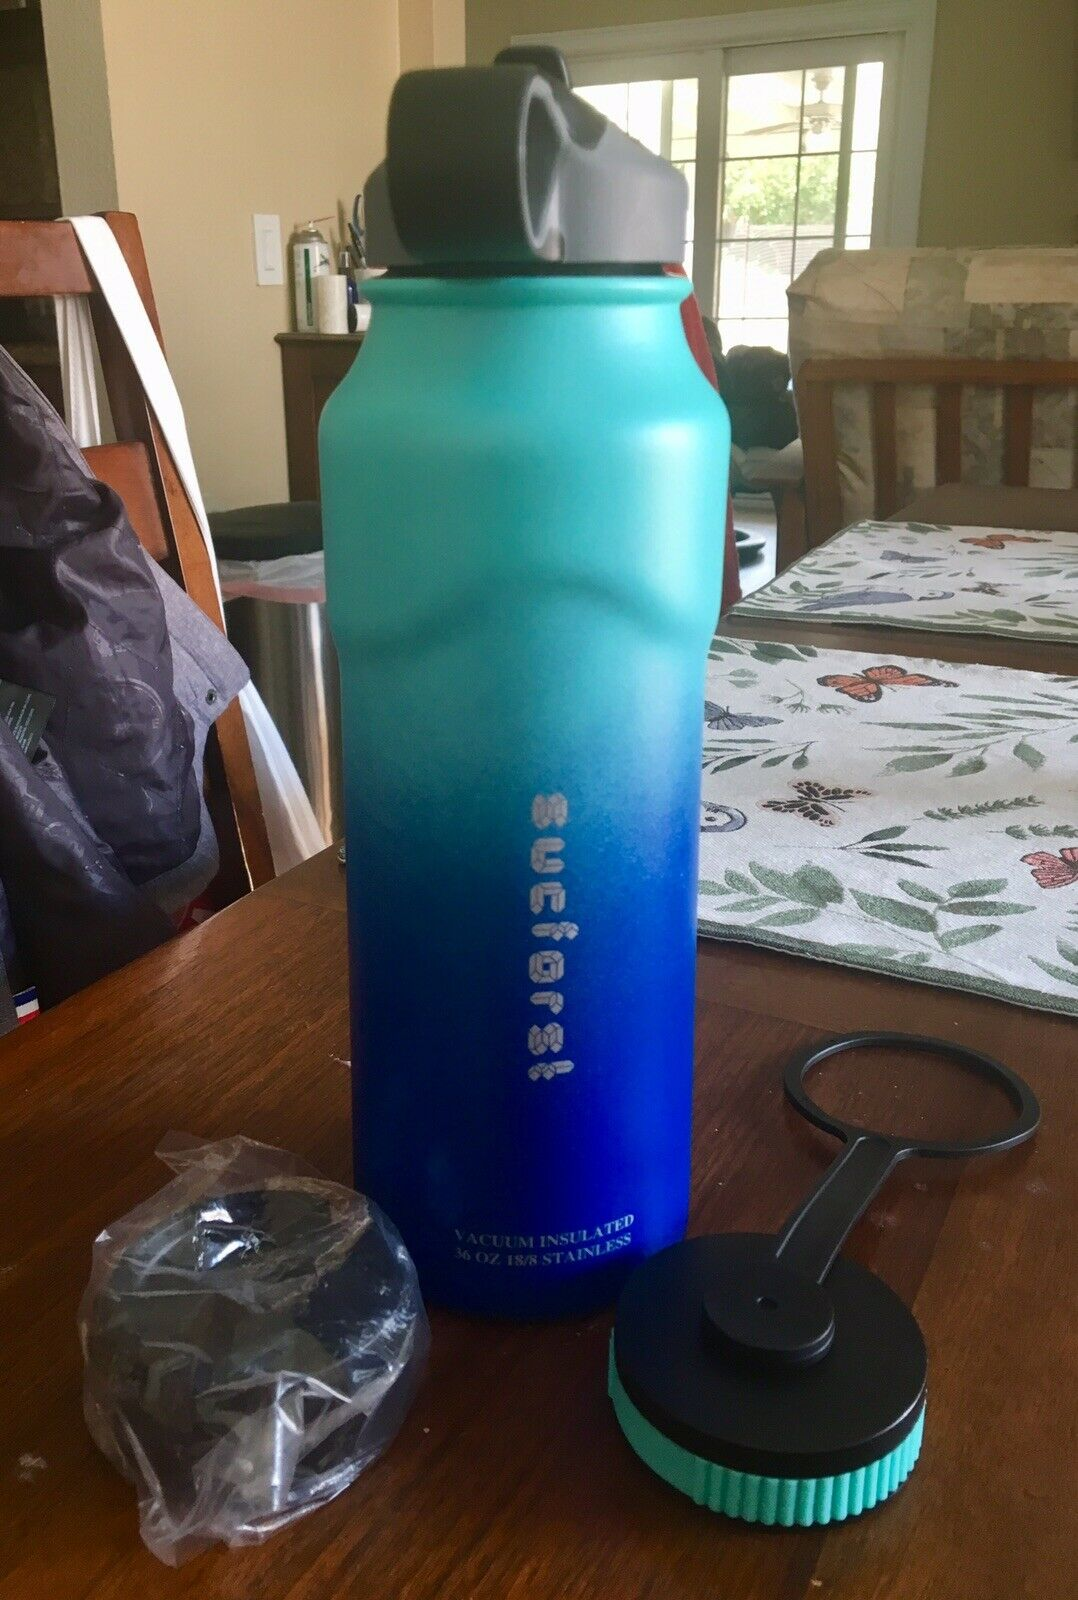 SUCFROST 36 Oz Stainless Steel Water Bottle